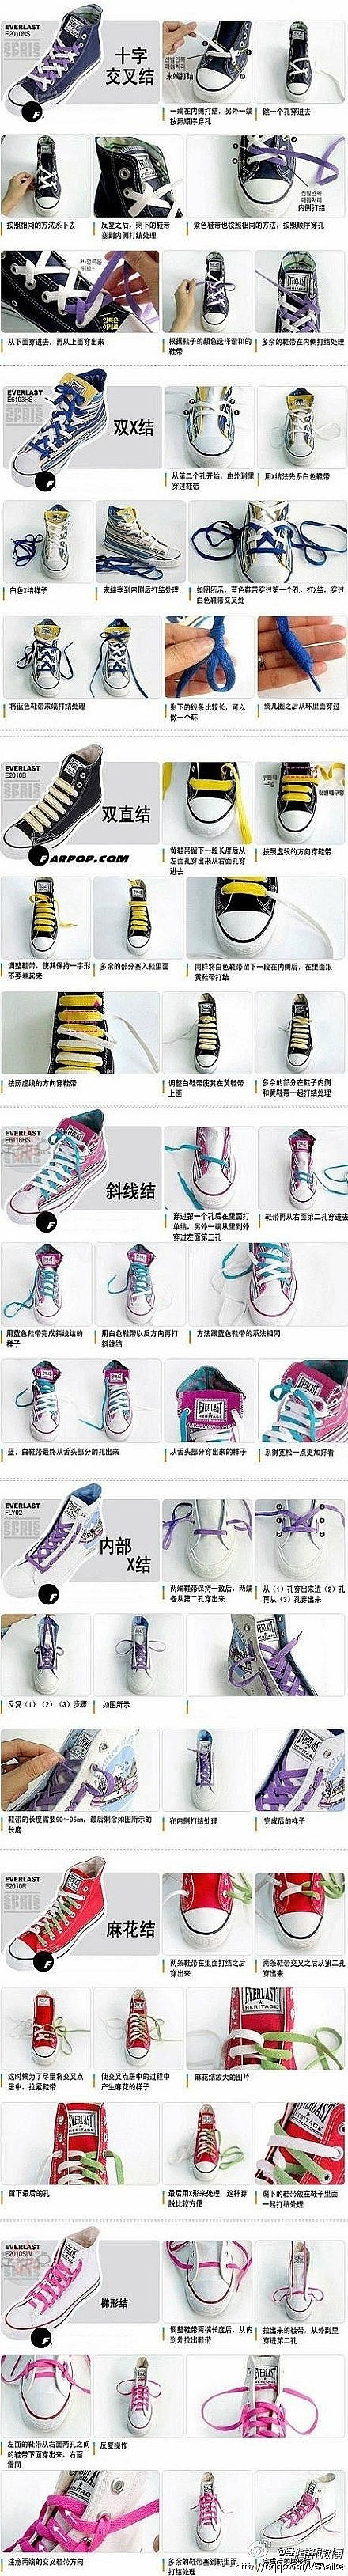 Converse clipart shoelace I in on patterns patterns